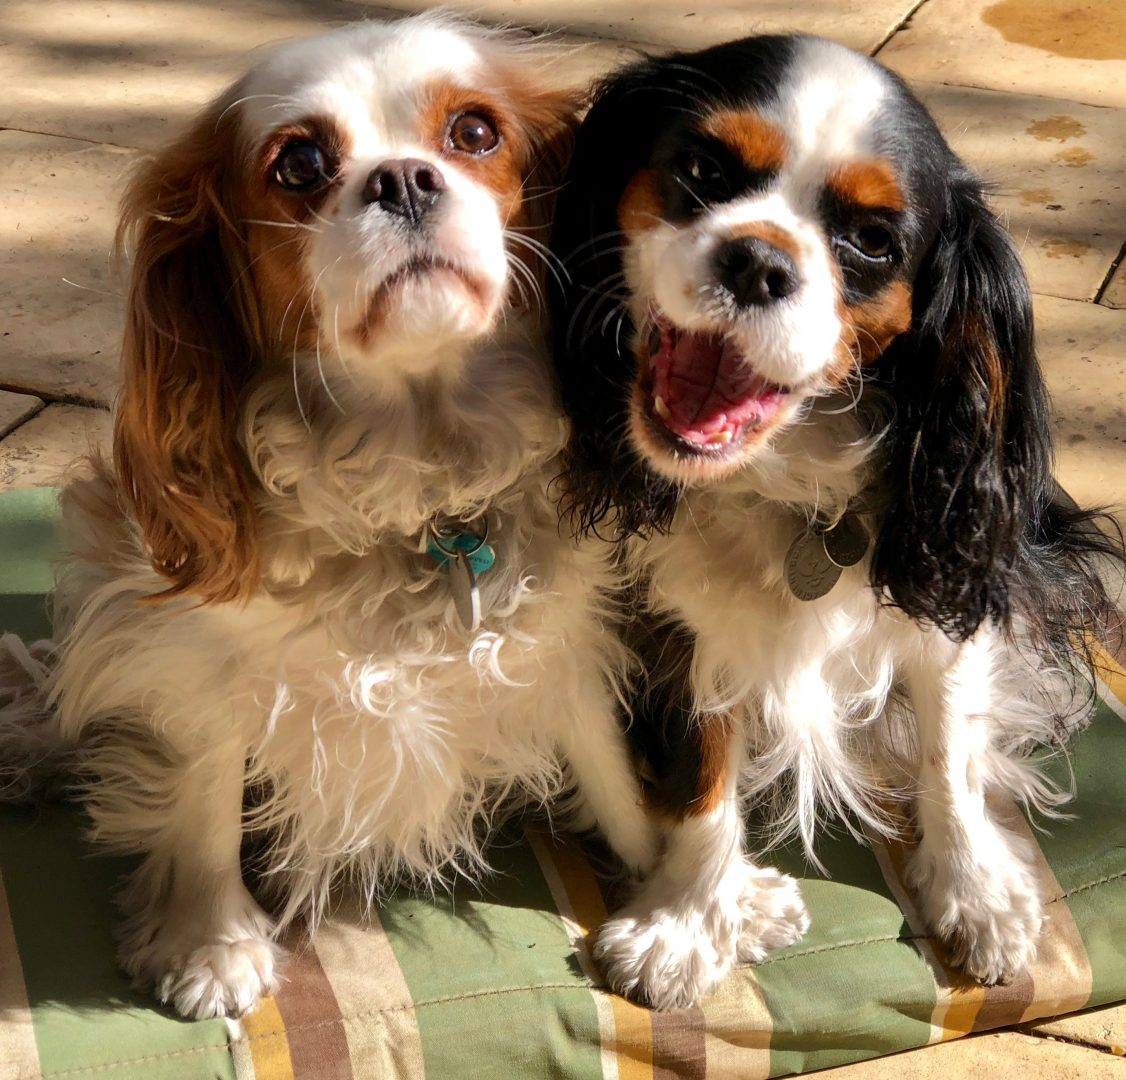 dog behavioural training, Tamara Di Santo Best Friend Dog Care, dog training, behaviour and relation ship coach Adelaide South Australia, living with dogs, king charles cavaliers